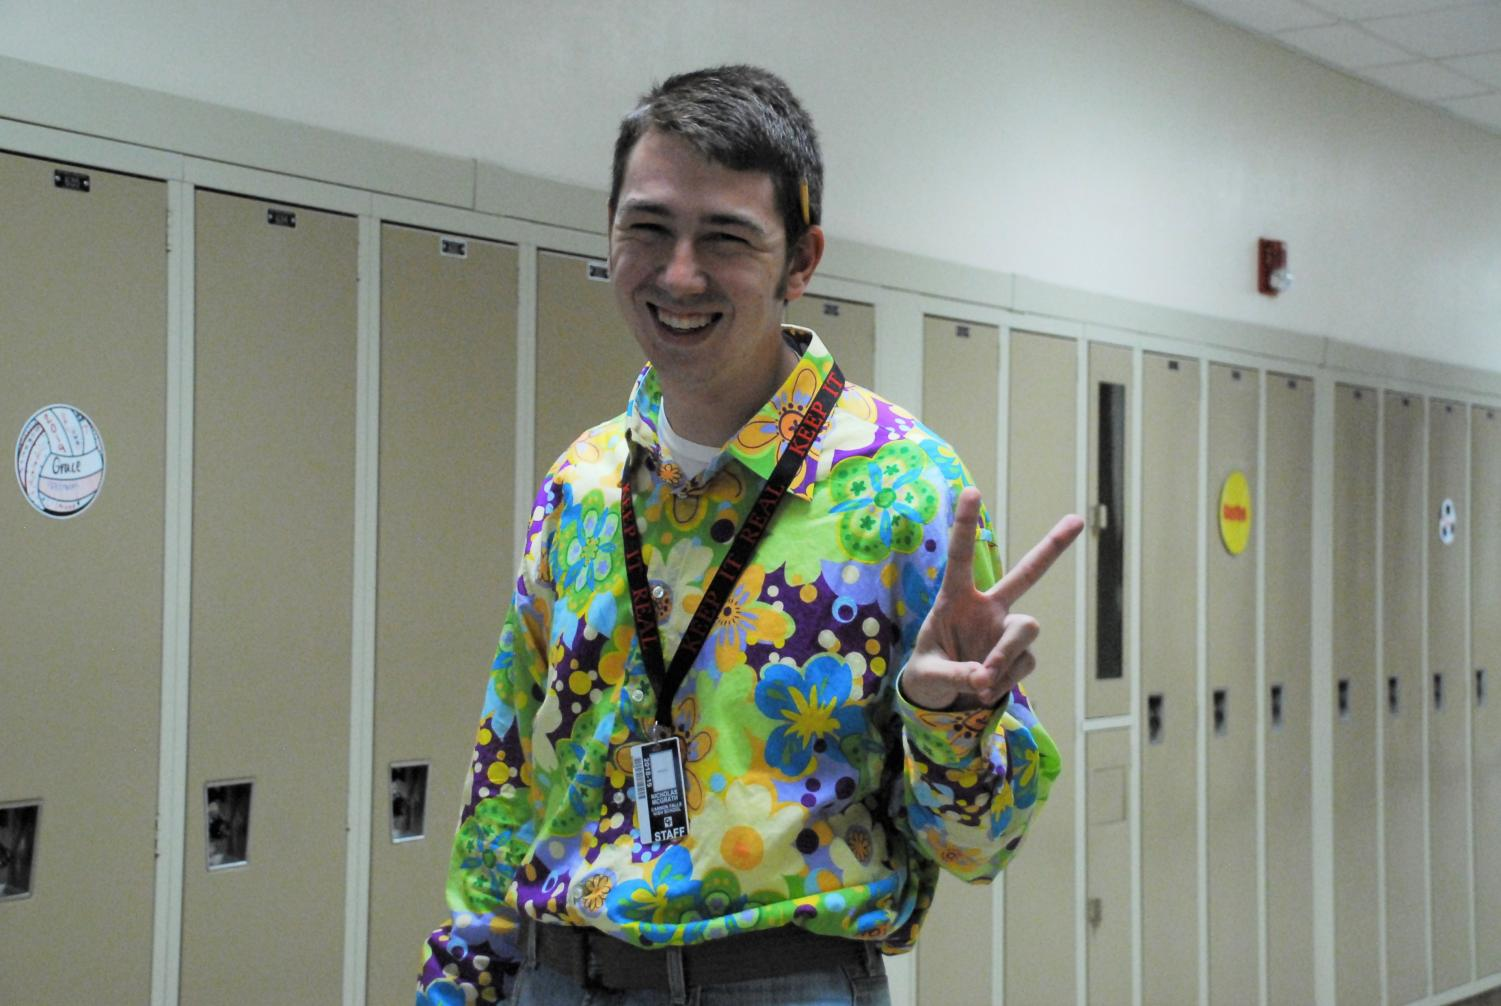 Mr. McGrath was feeling groovy on Throwback Thursday during homecoming week.